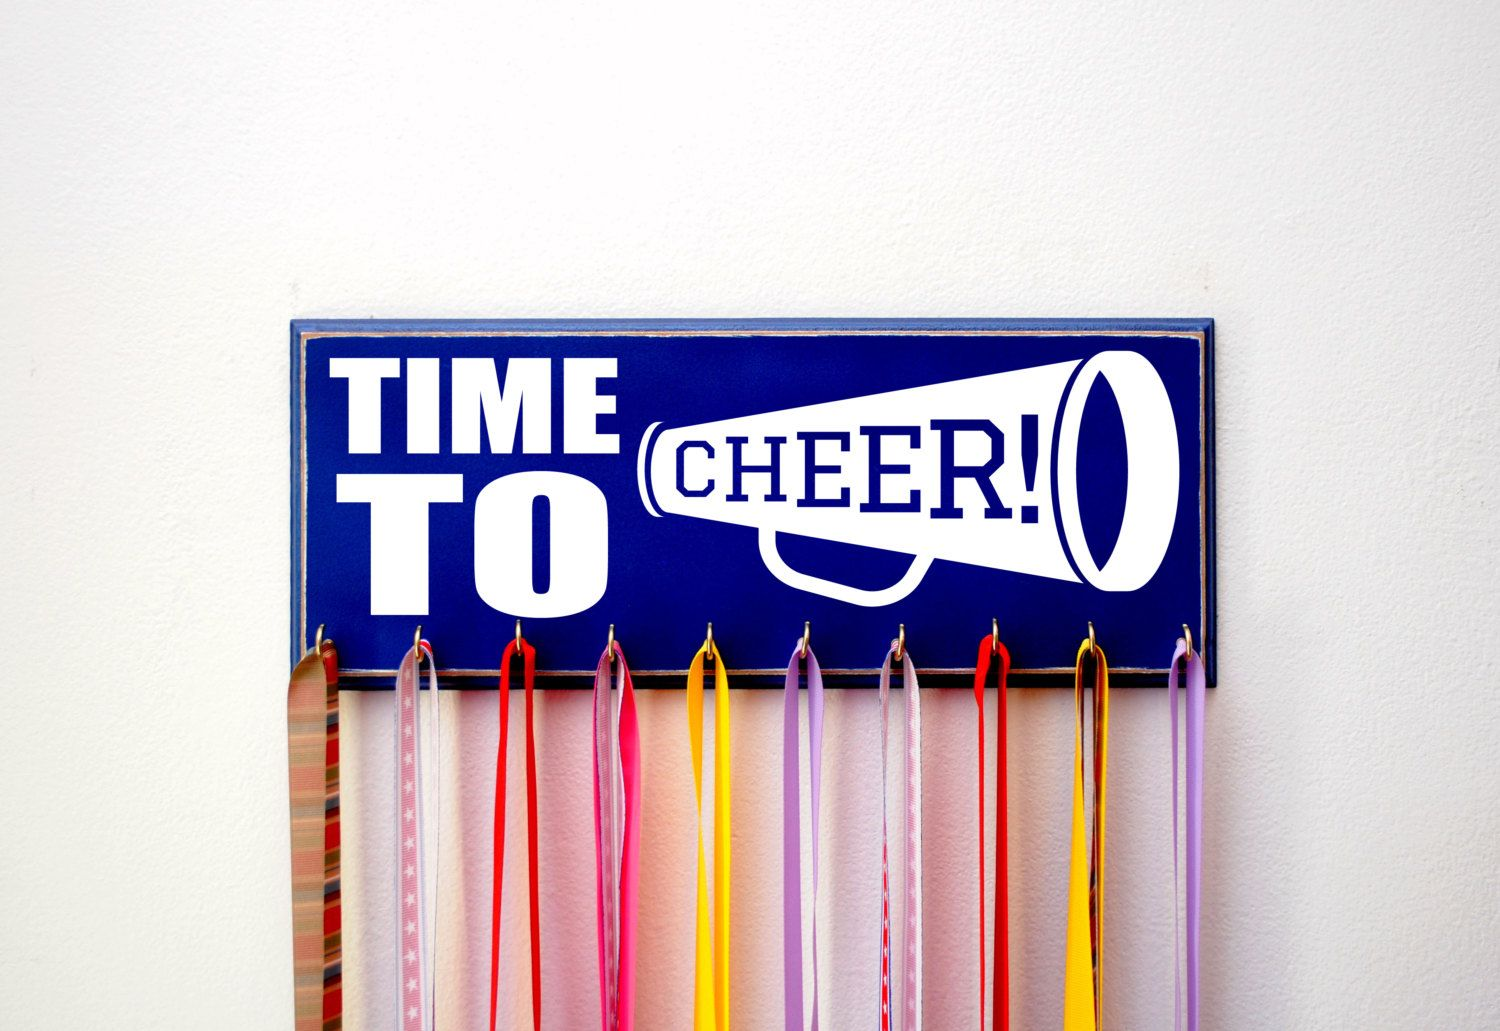 Time to Cheer, Cheerleader Medal Holder for Cheer Medals, Cheerleader gift, Gift For Teen, High School Cheerleader, Cheerleader Lets Go Team by UntamedBranches on Etsy